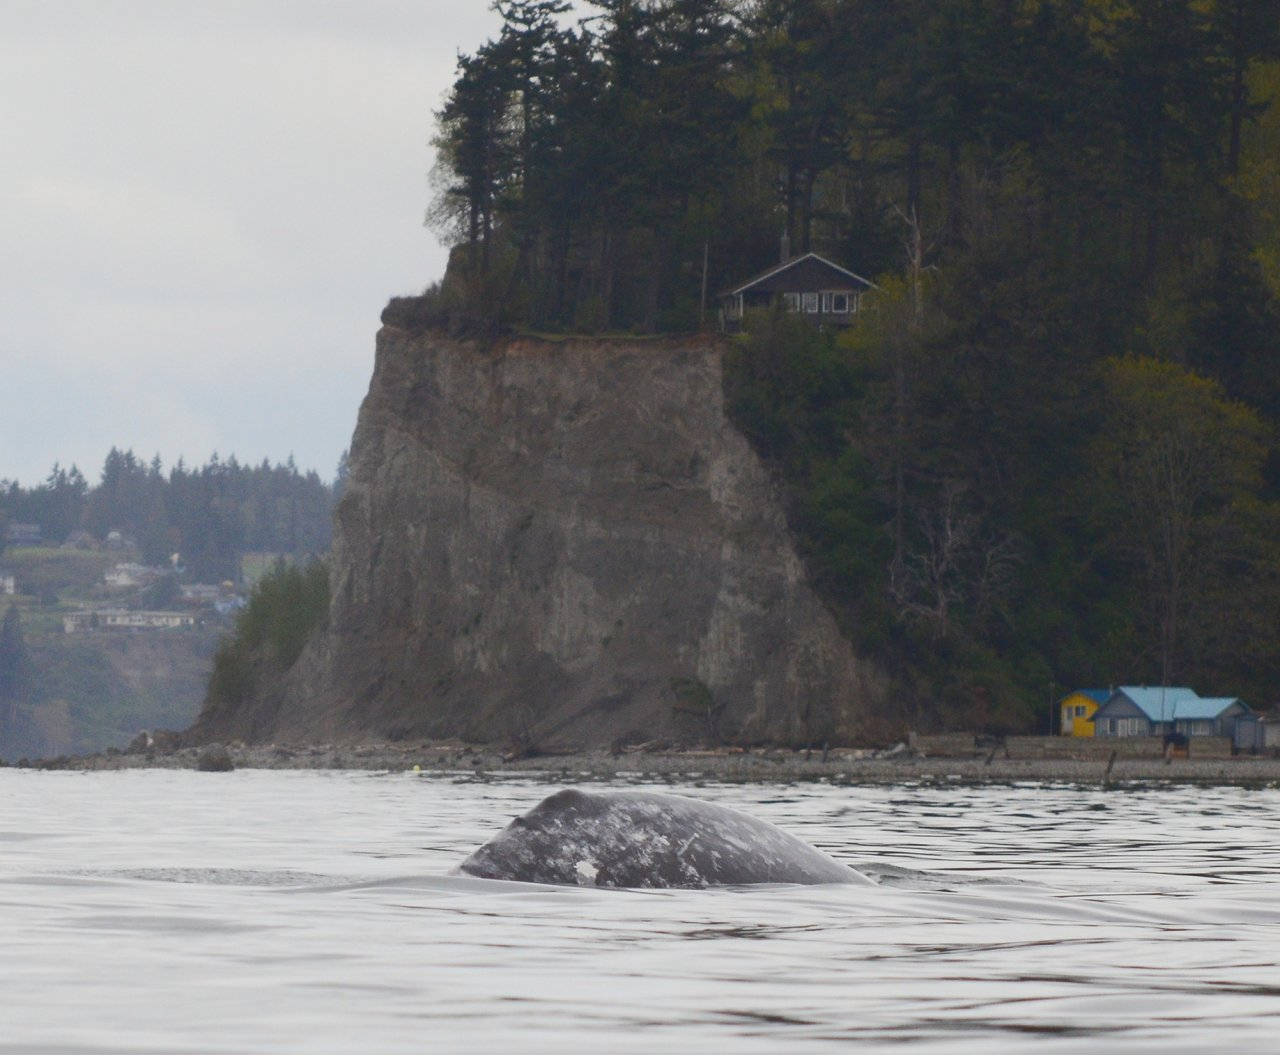 09 Gray whale near Hat Island.JPG